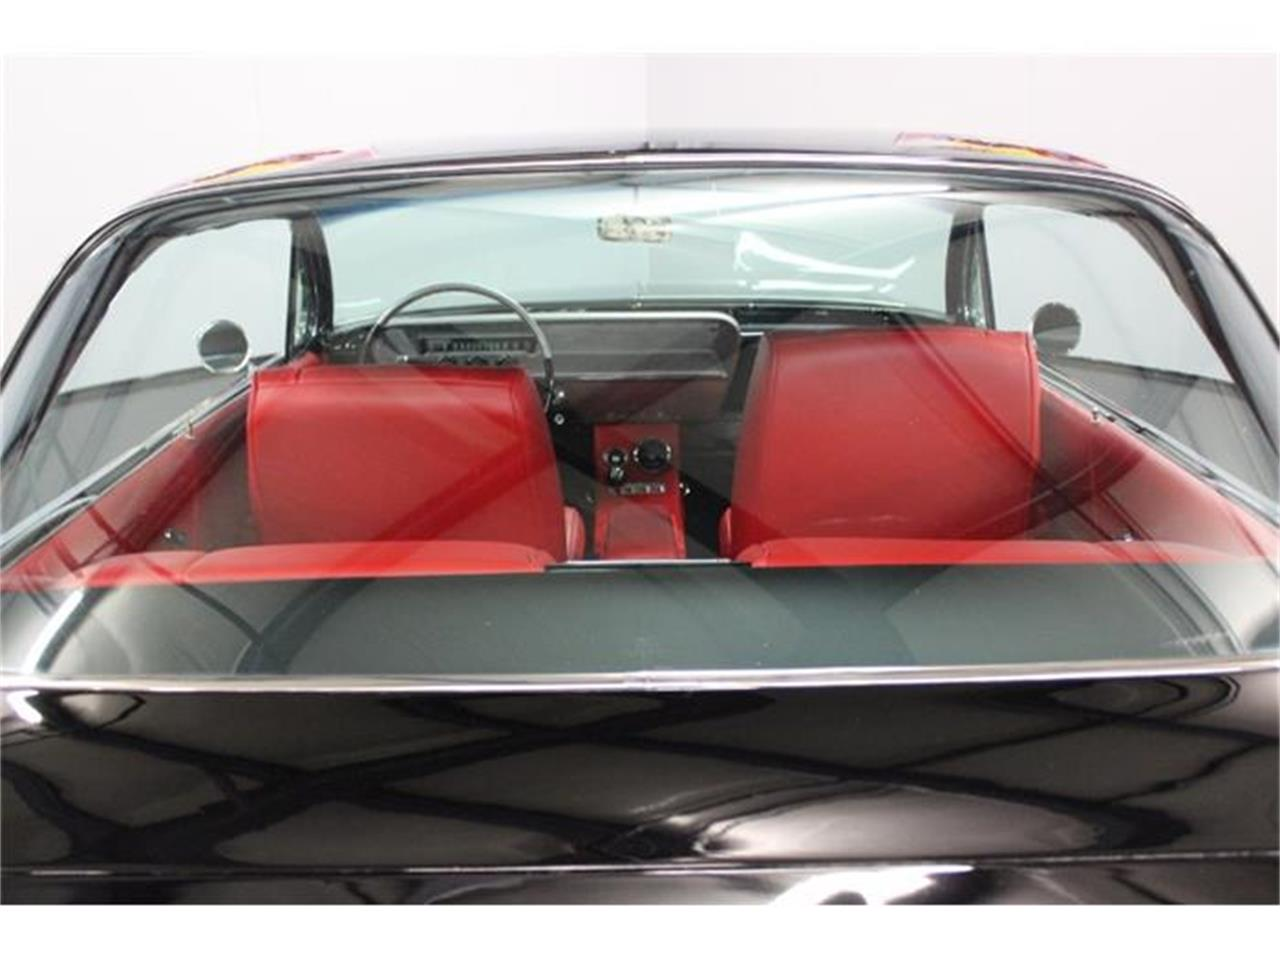 Large Picture of 1961 Chevrolet Impala located in Lillington North Carolina - $65,000.00 - HJ60